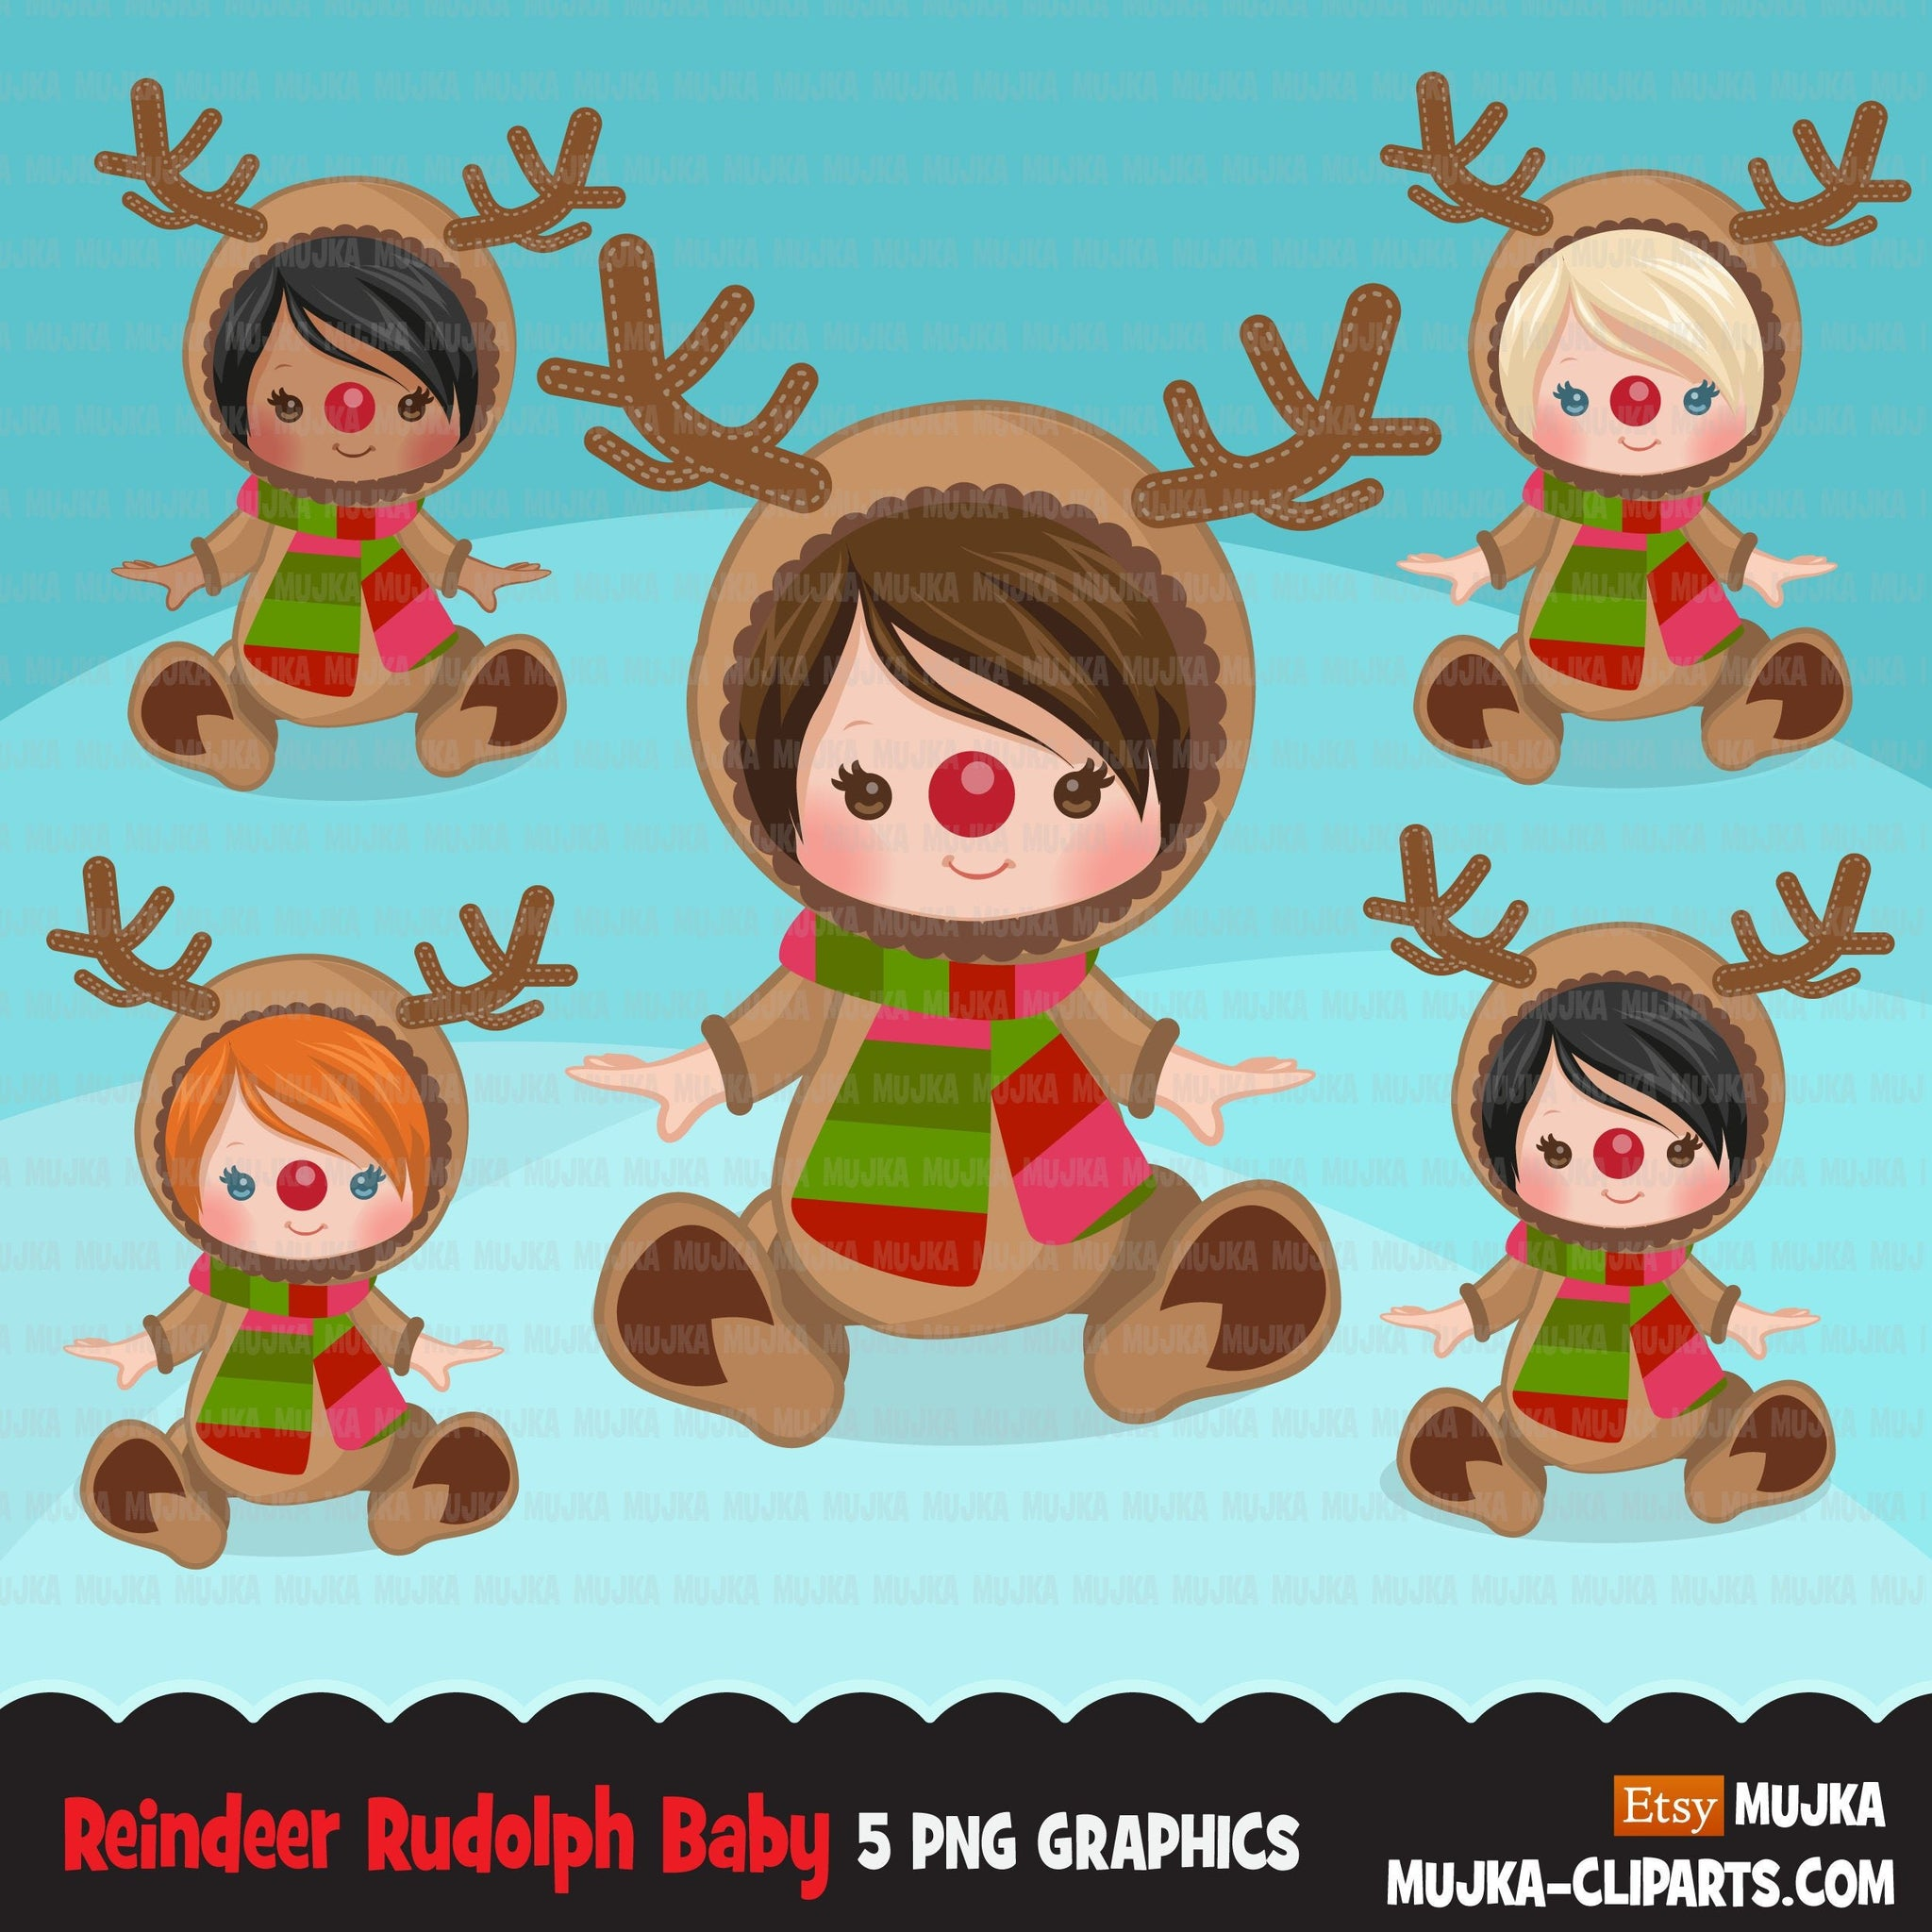 Reindeer Rudolph Baby clipart, reindeer Christmas costume baby shower graphics, card making, birthday party, african american baby, animal clip art